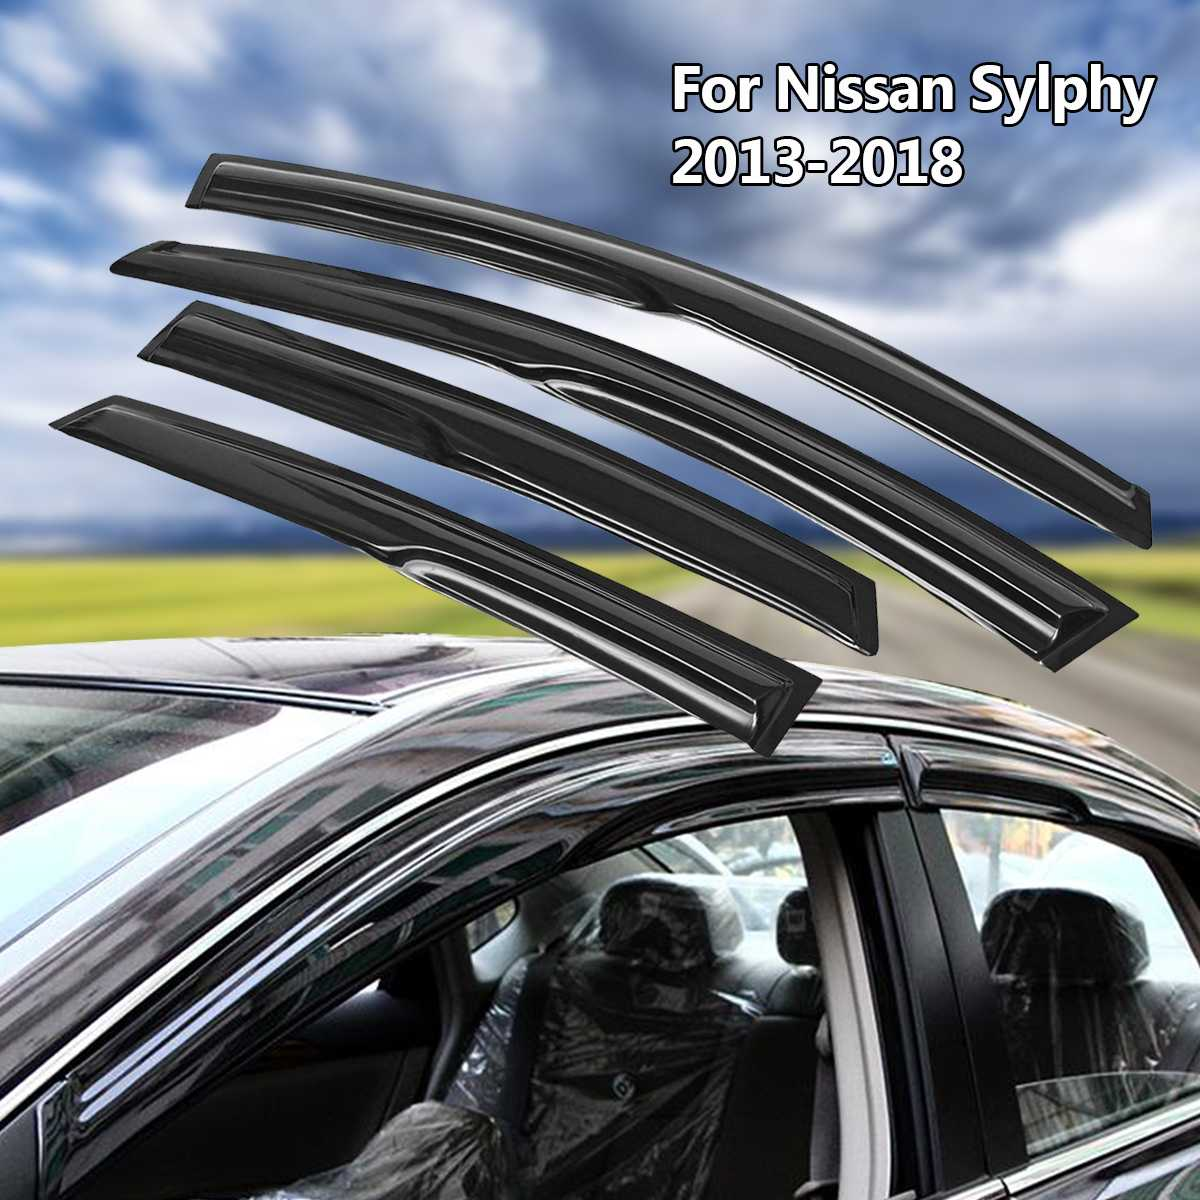 Car Accessories Window Visor Sun Rain Wind Deflector Awning Shield Vent Guard Shade Cover Trim For Nissan Sentra 2013-2018